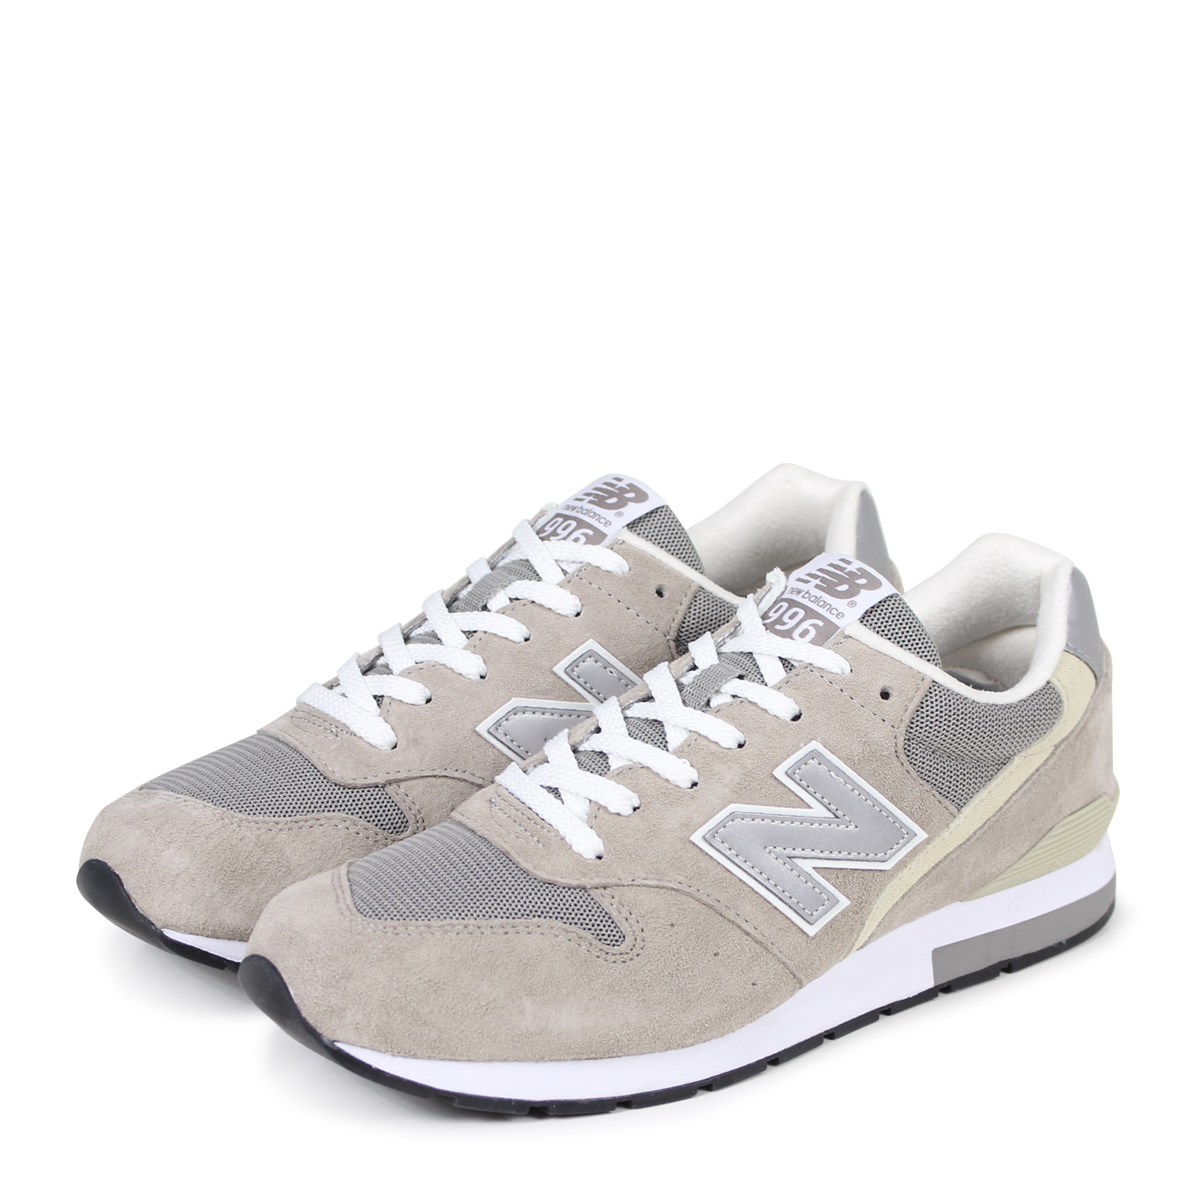 wholesale dealer f0bc0 1159e new balance 996 MRL996AG men gap Dis New Balance sneakers D Wise shoes cool  gray [194]